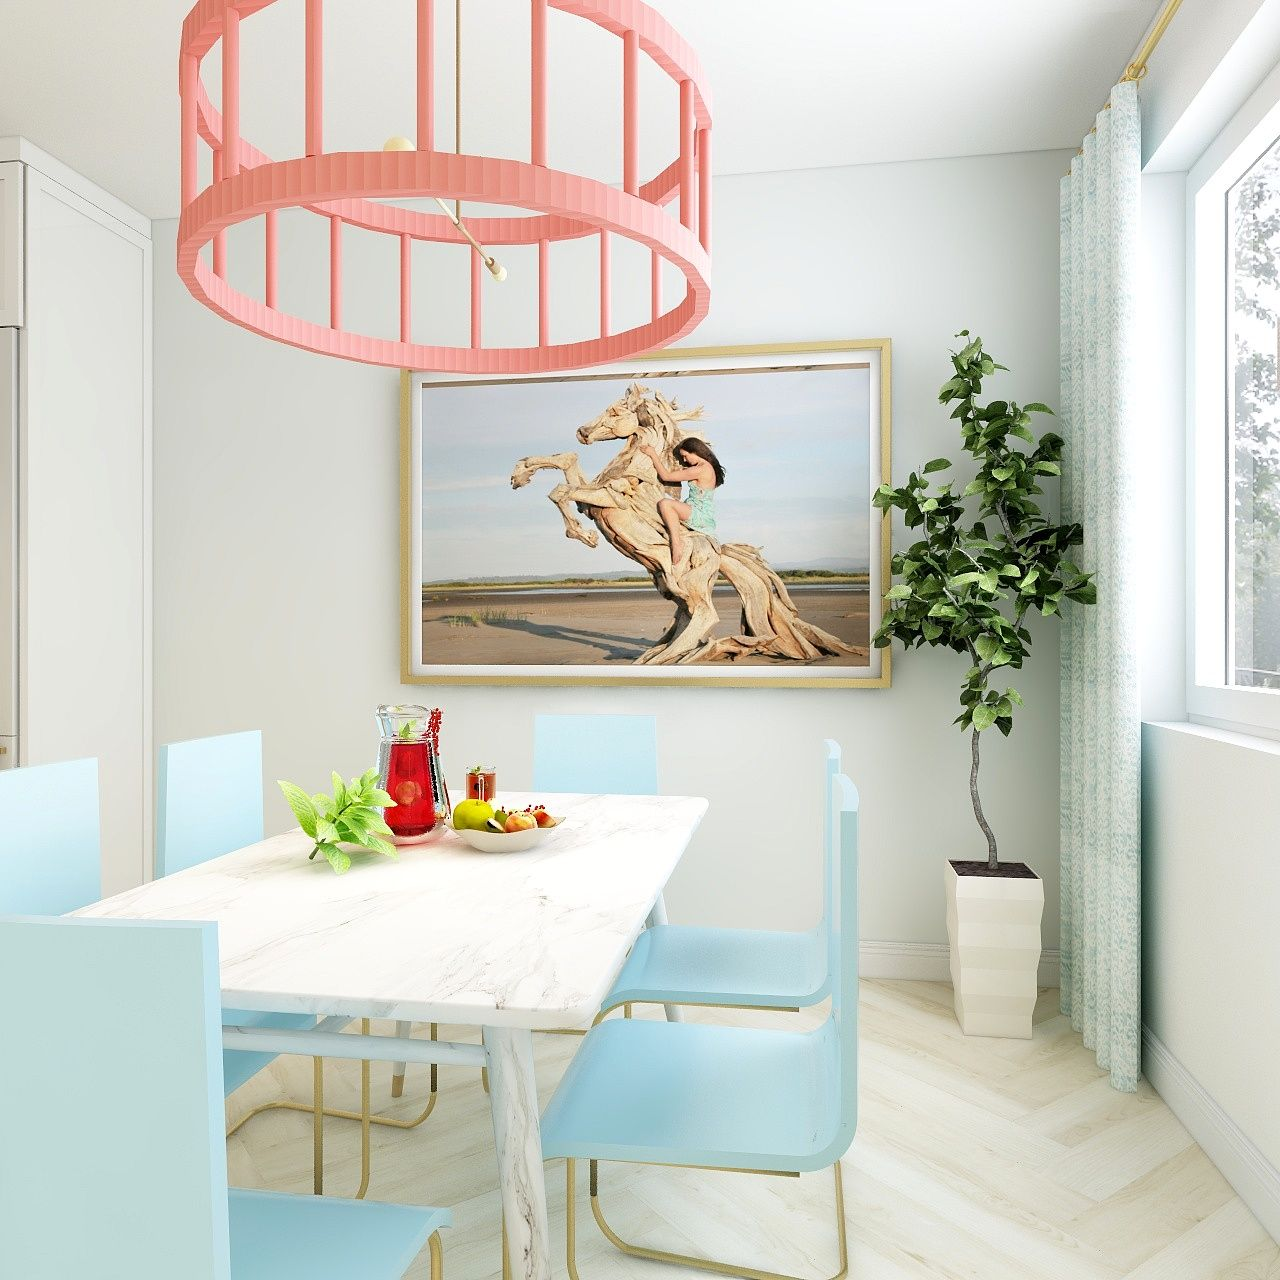 We just love this pretty dining area with a coastal vibe and pops of confectionary color 🍬   Photo: #3drendering 😮 by #mcbrieninteriors Designed by: @mcbrieninteriors  #diningroom #diningarea #popofcolor #coastalvibe #coastalinteriors #interiordesign #summer #coastalliving  #tagafriend